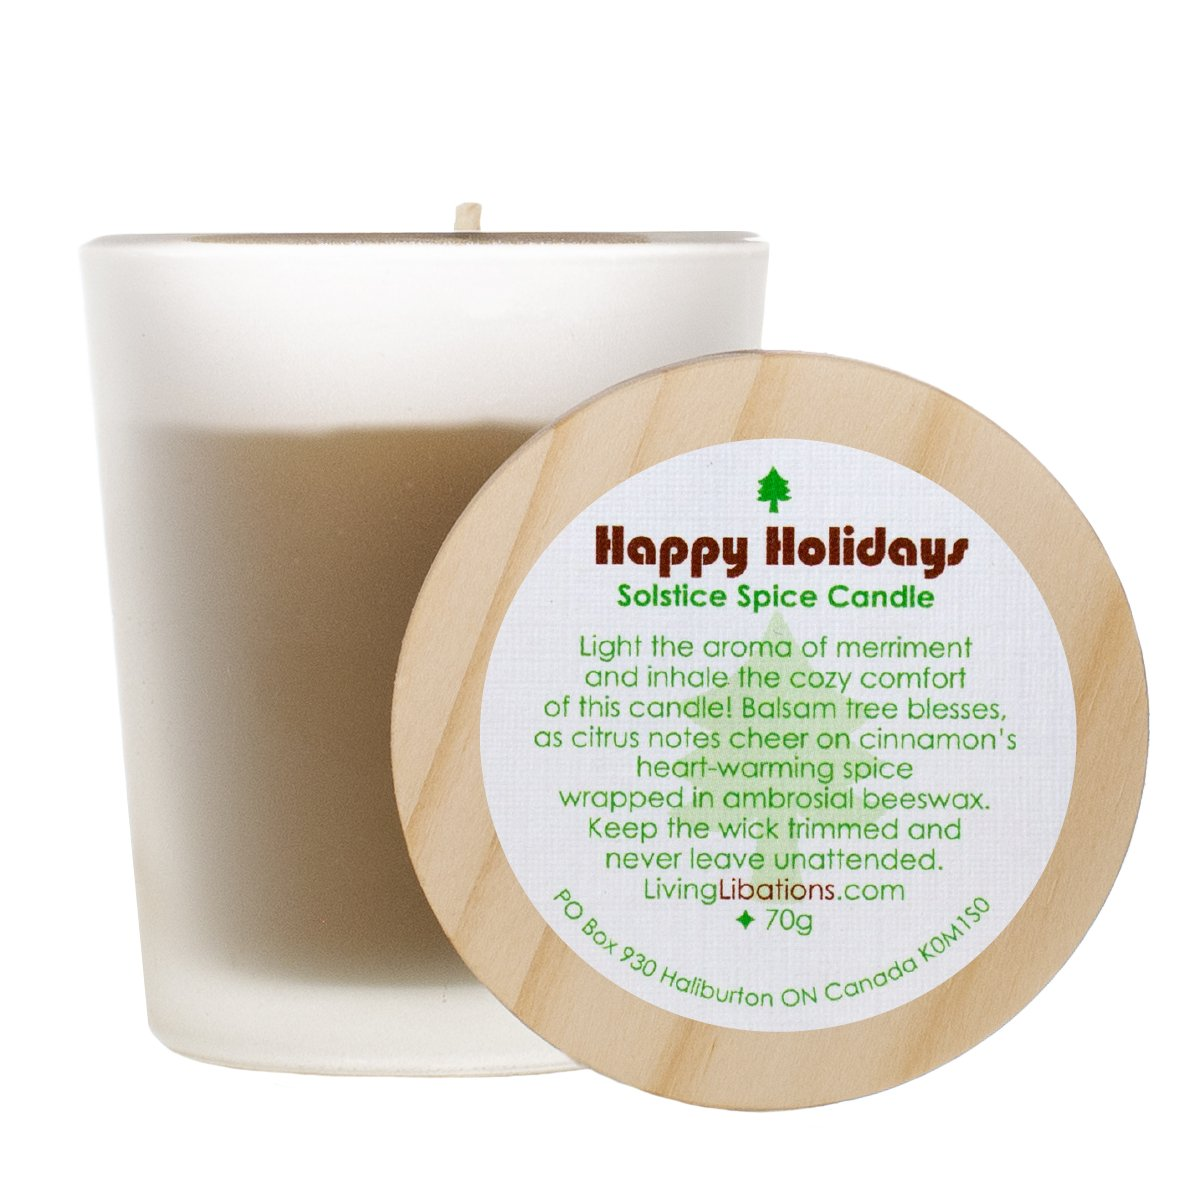 Happy Holiday Solstice Spice Candle